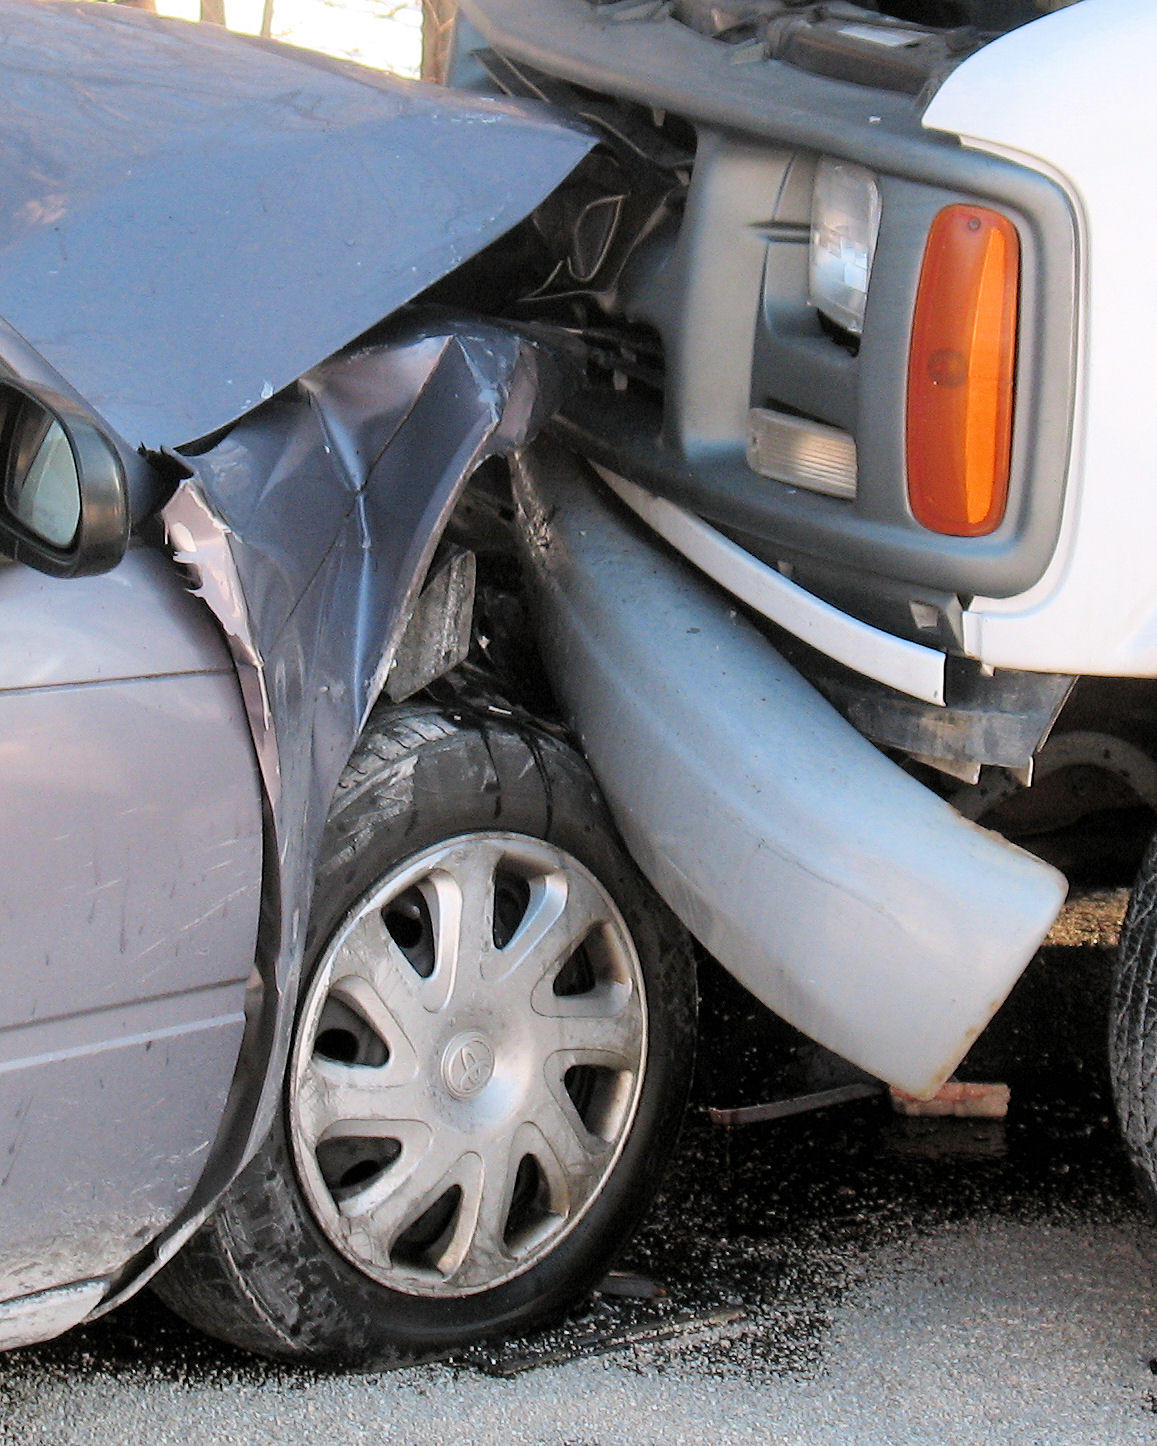 Having anxiety after a car accident is very common, and very normal. Here's 7 ways you can effectively recover from anxiety after a car accident.